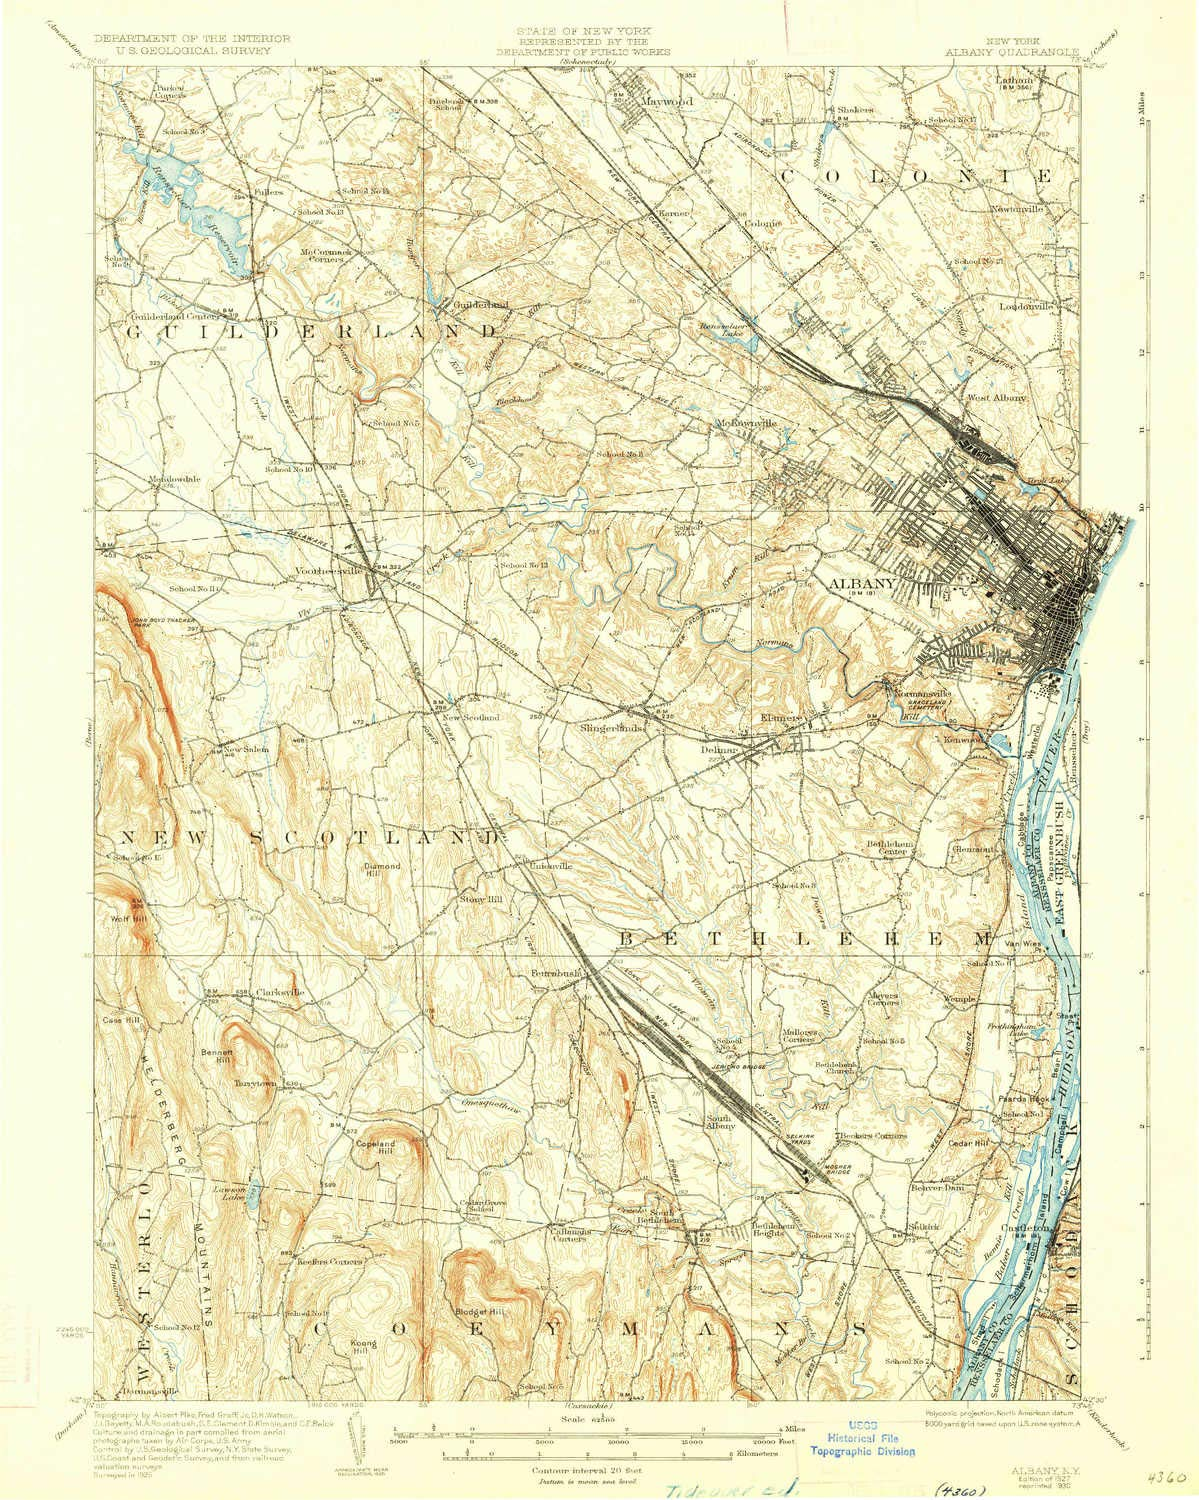 Amazon.com : YellowMaps Albany NY topo map, 1:62500 Scale ... on map city of cohoes, map trenton nj, hudson river, map albany mn, map greenville ny, new york state capitol, map plattsburgh ny, long island, map buffalo ny, map of east islip new york, map astoria ny, map of upstate new york, map of adams tn, map of albany county new york, map of new york city in 1920, map brunswick me, map of albany area, map amherst ny, saratoga springs, new york, map of cohoes new york, niagara falls, map saratoga springs ny, map of ny, map glens falls ny, map utica ny, erie canal,